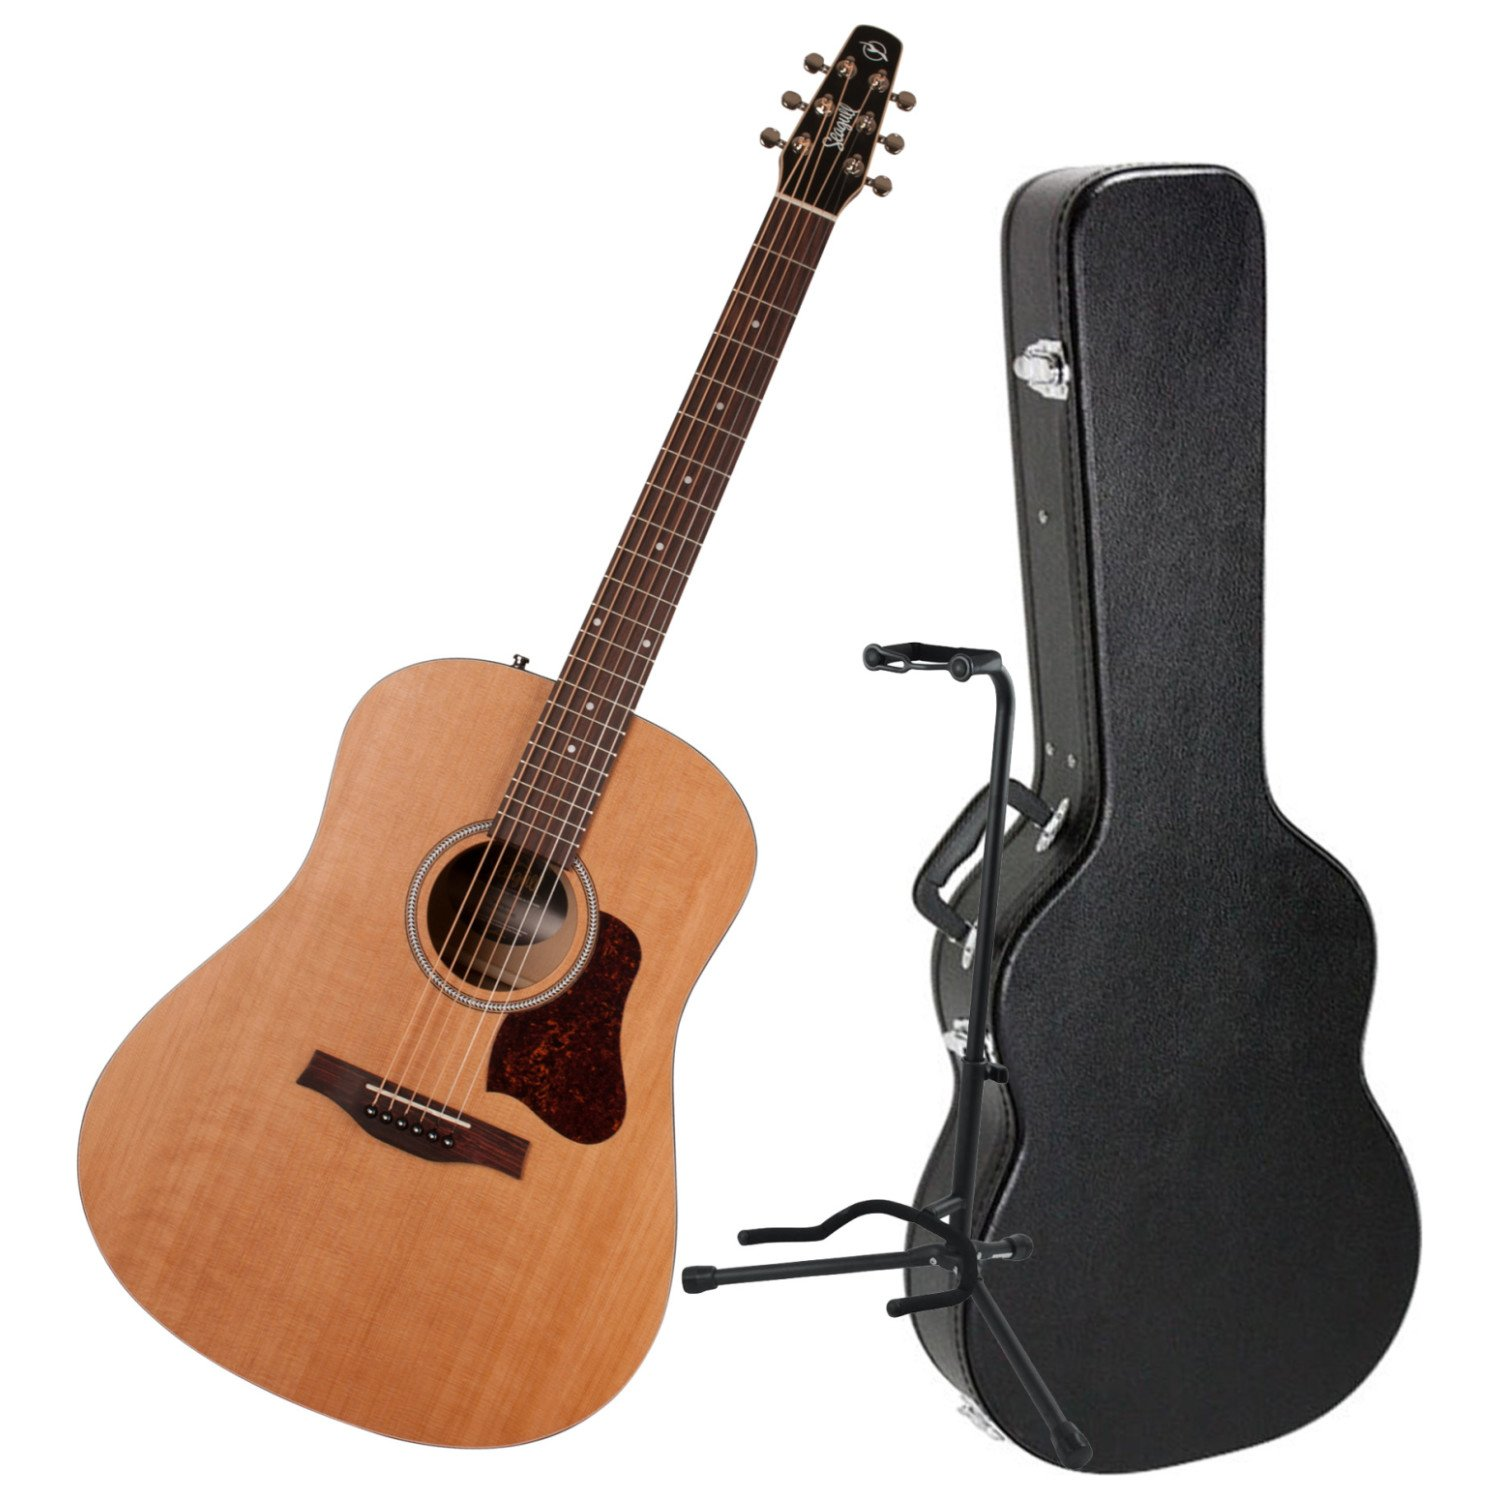 Seagull S6 ''The Original'' Acoustic Guitar w/Dreadnought Hardshell Case and Guitar Stand by Seagull